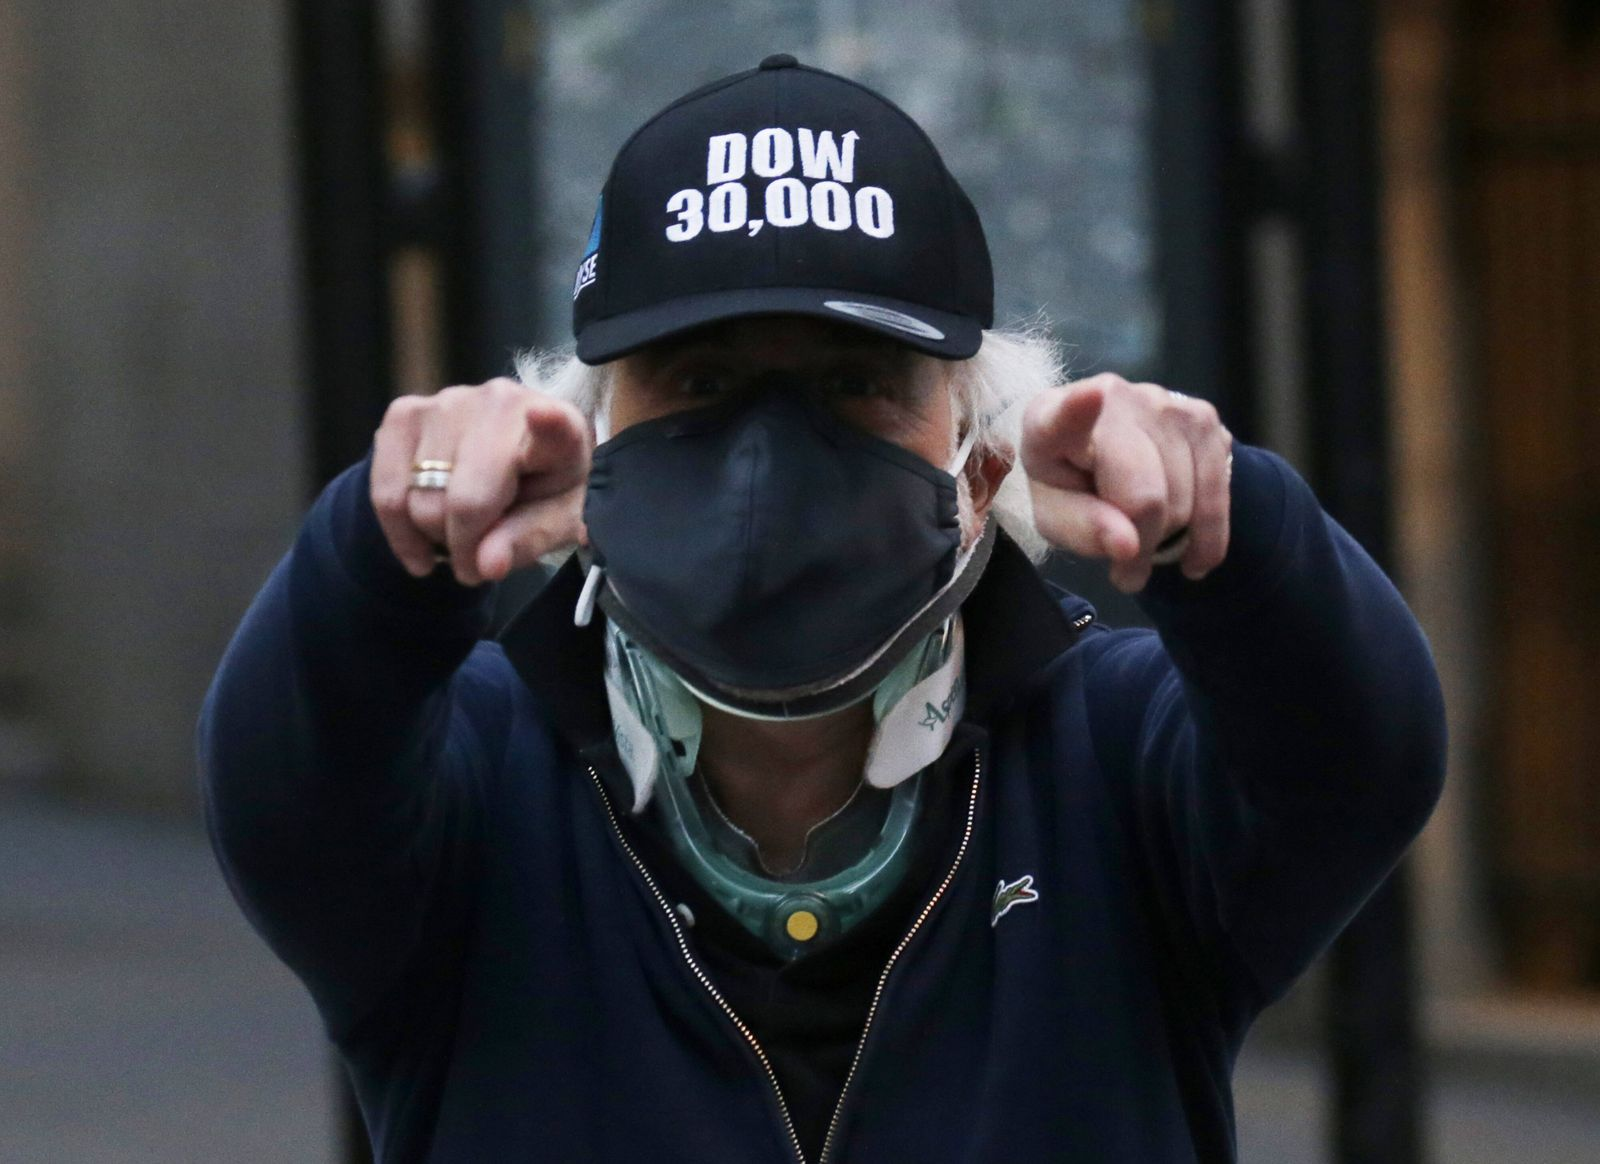 Trader Peter Tuchman reacts after he exits the New York Stock Exchange wearing DOW 30,000 hat after the closing Bell at